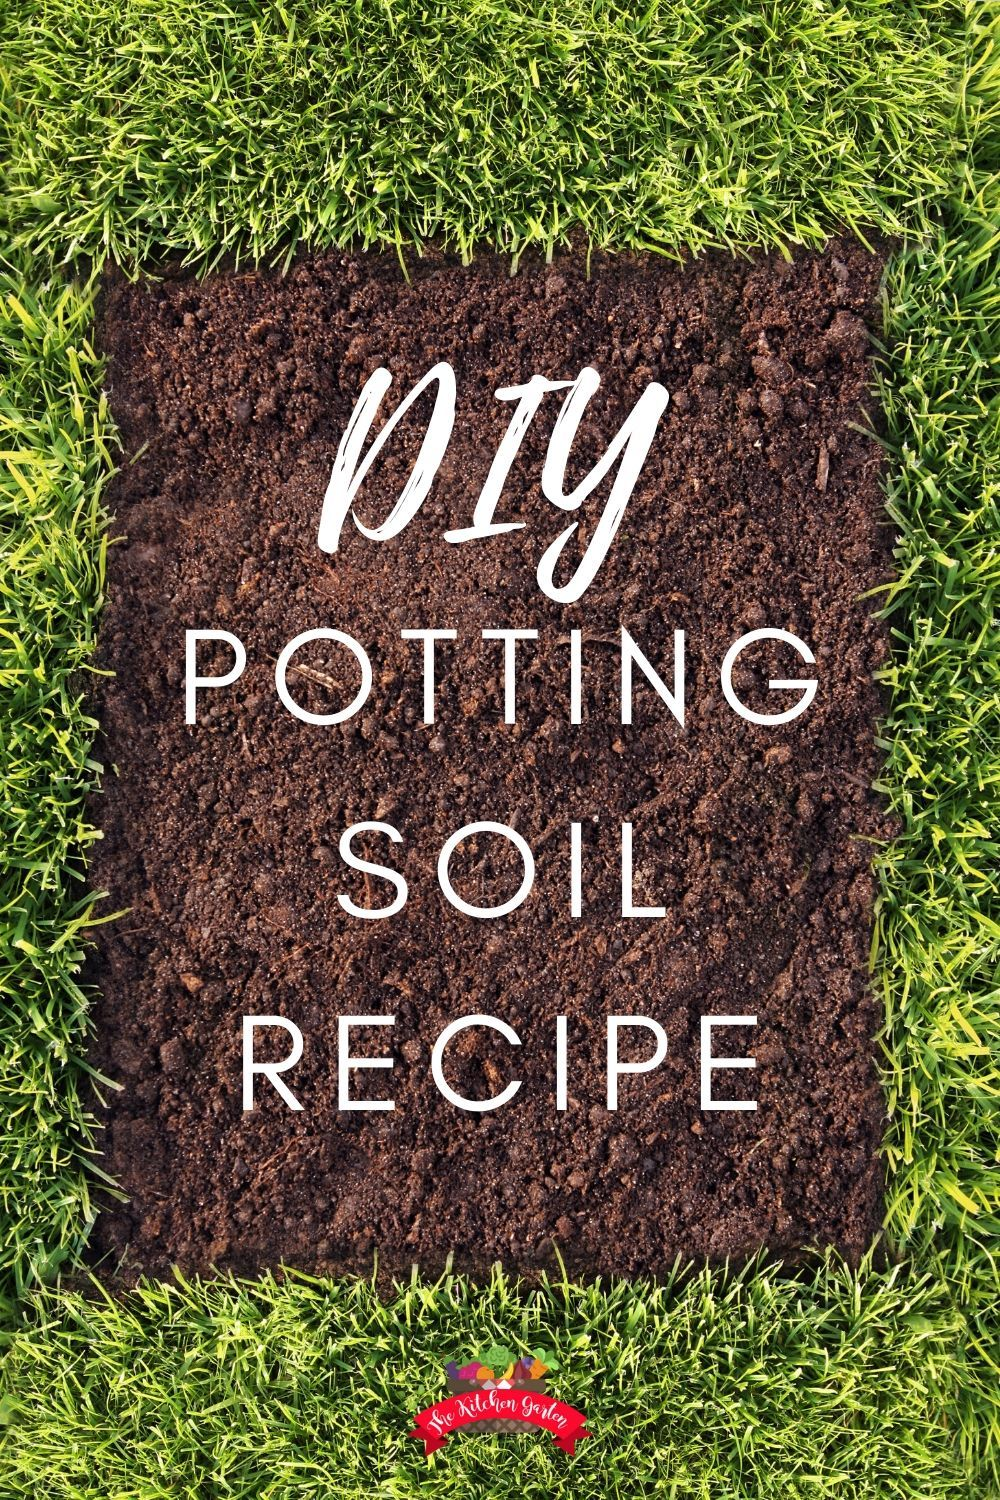 DIY Potting Soil Recipe is part of Garden soil, Container gardening vegetables, Potting soil, Container gardening, Veggie garden, Garden yard ideas - Forget the bags of soil at the hardware store  Know exactly what's in your potting soil recipe this DIY potting soil  And it's only 3 ingredients!